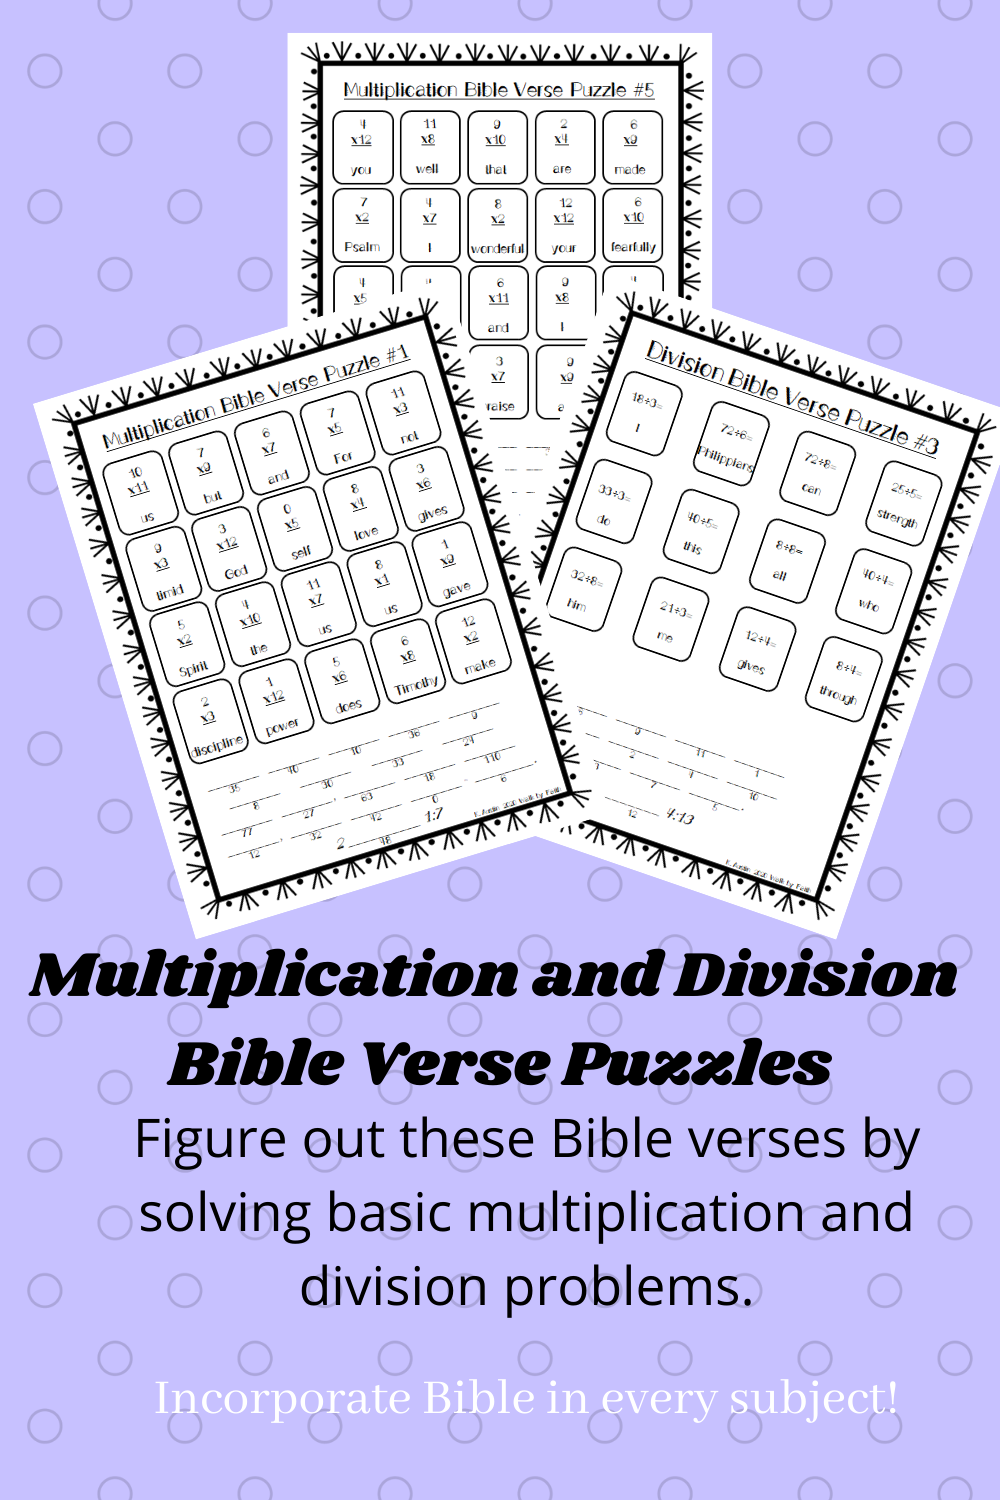 Basic Multiplication And Division Bible Verse Puzzles Bible Homeschool Multiplication And Division Christian Curriculum [ 1500 x 1000 Pixel ]